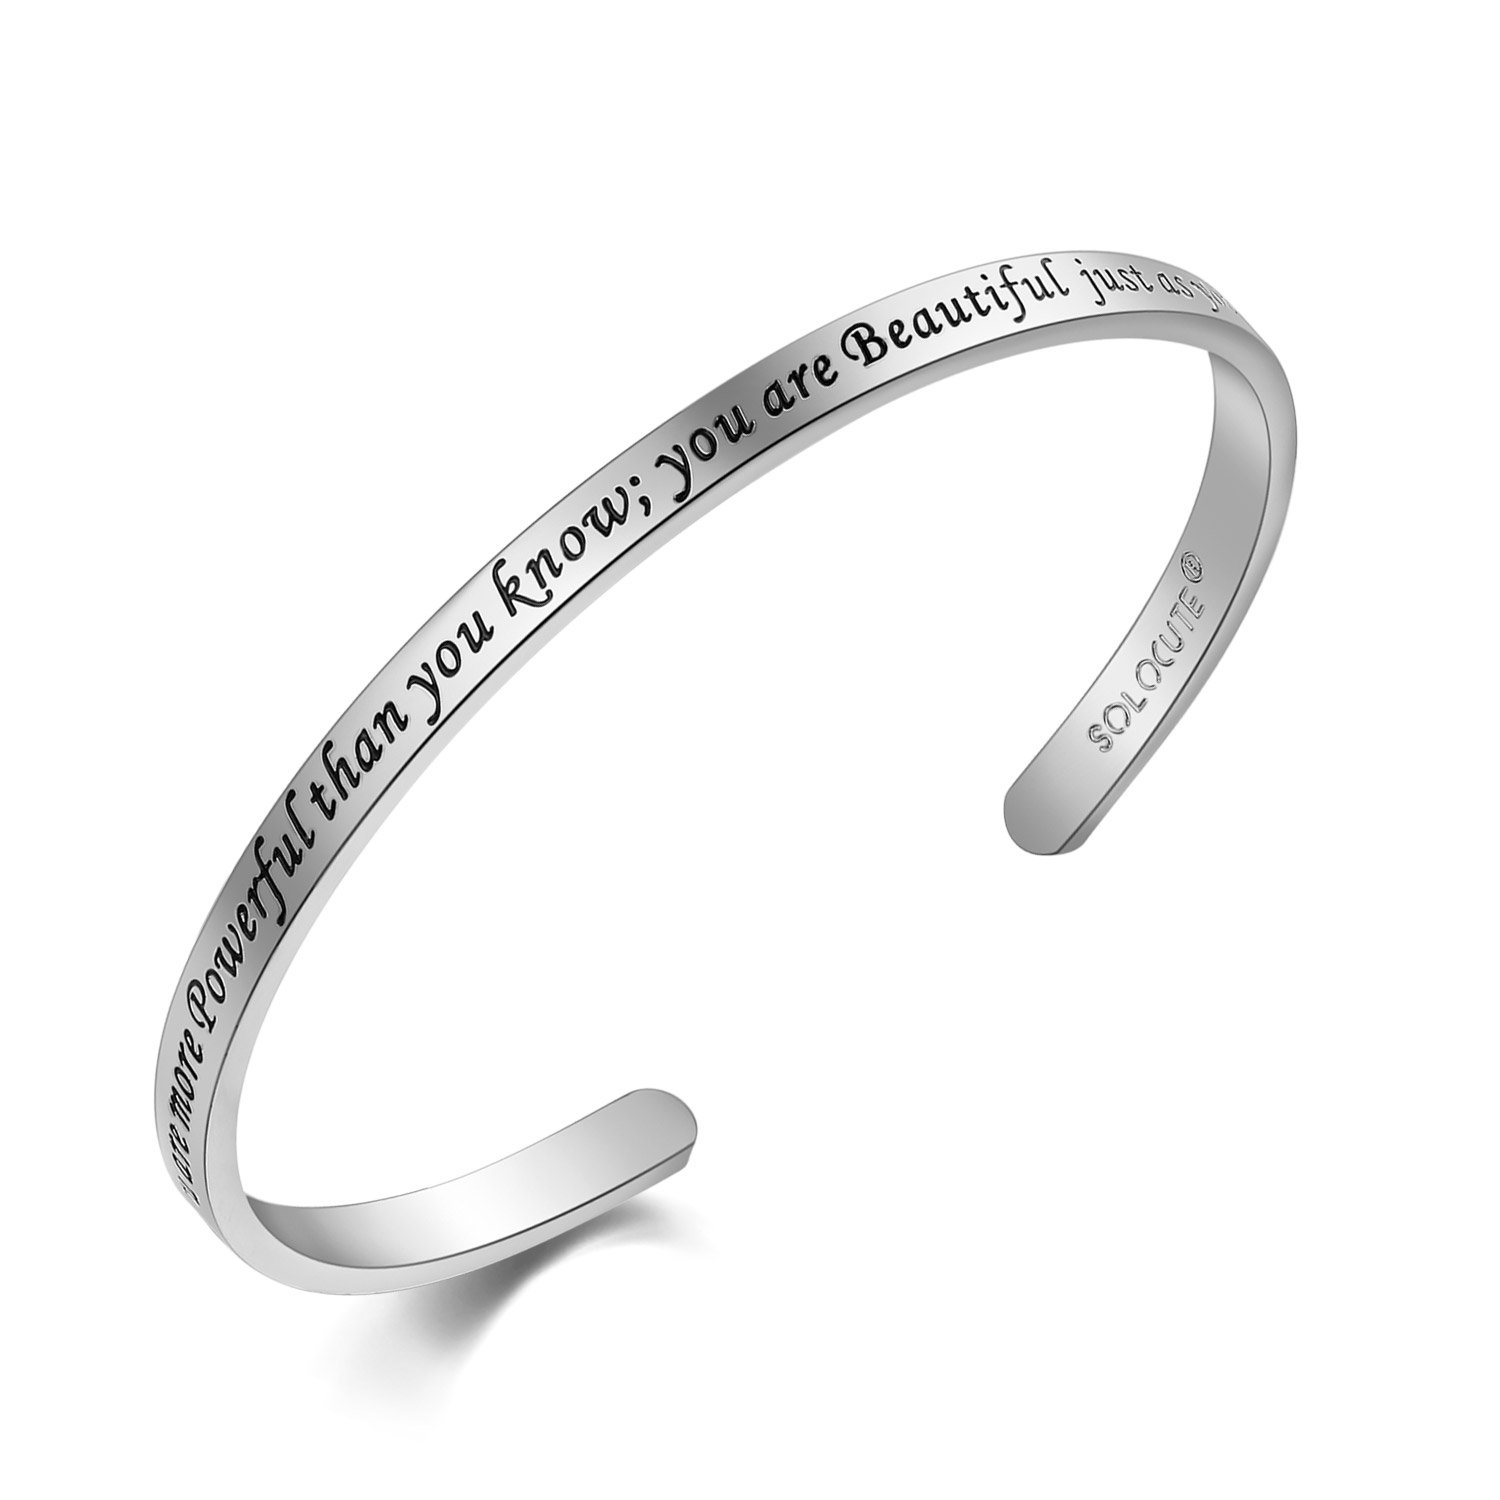 Solocute Elegant Memories Gold Plated Bangle Bracelet Engraved You are More Powerful Than You Know; You are Beautiful just as You are Inspirational Cuff Jewelry for Christmas Day SC036RG